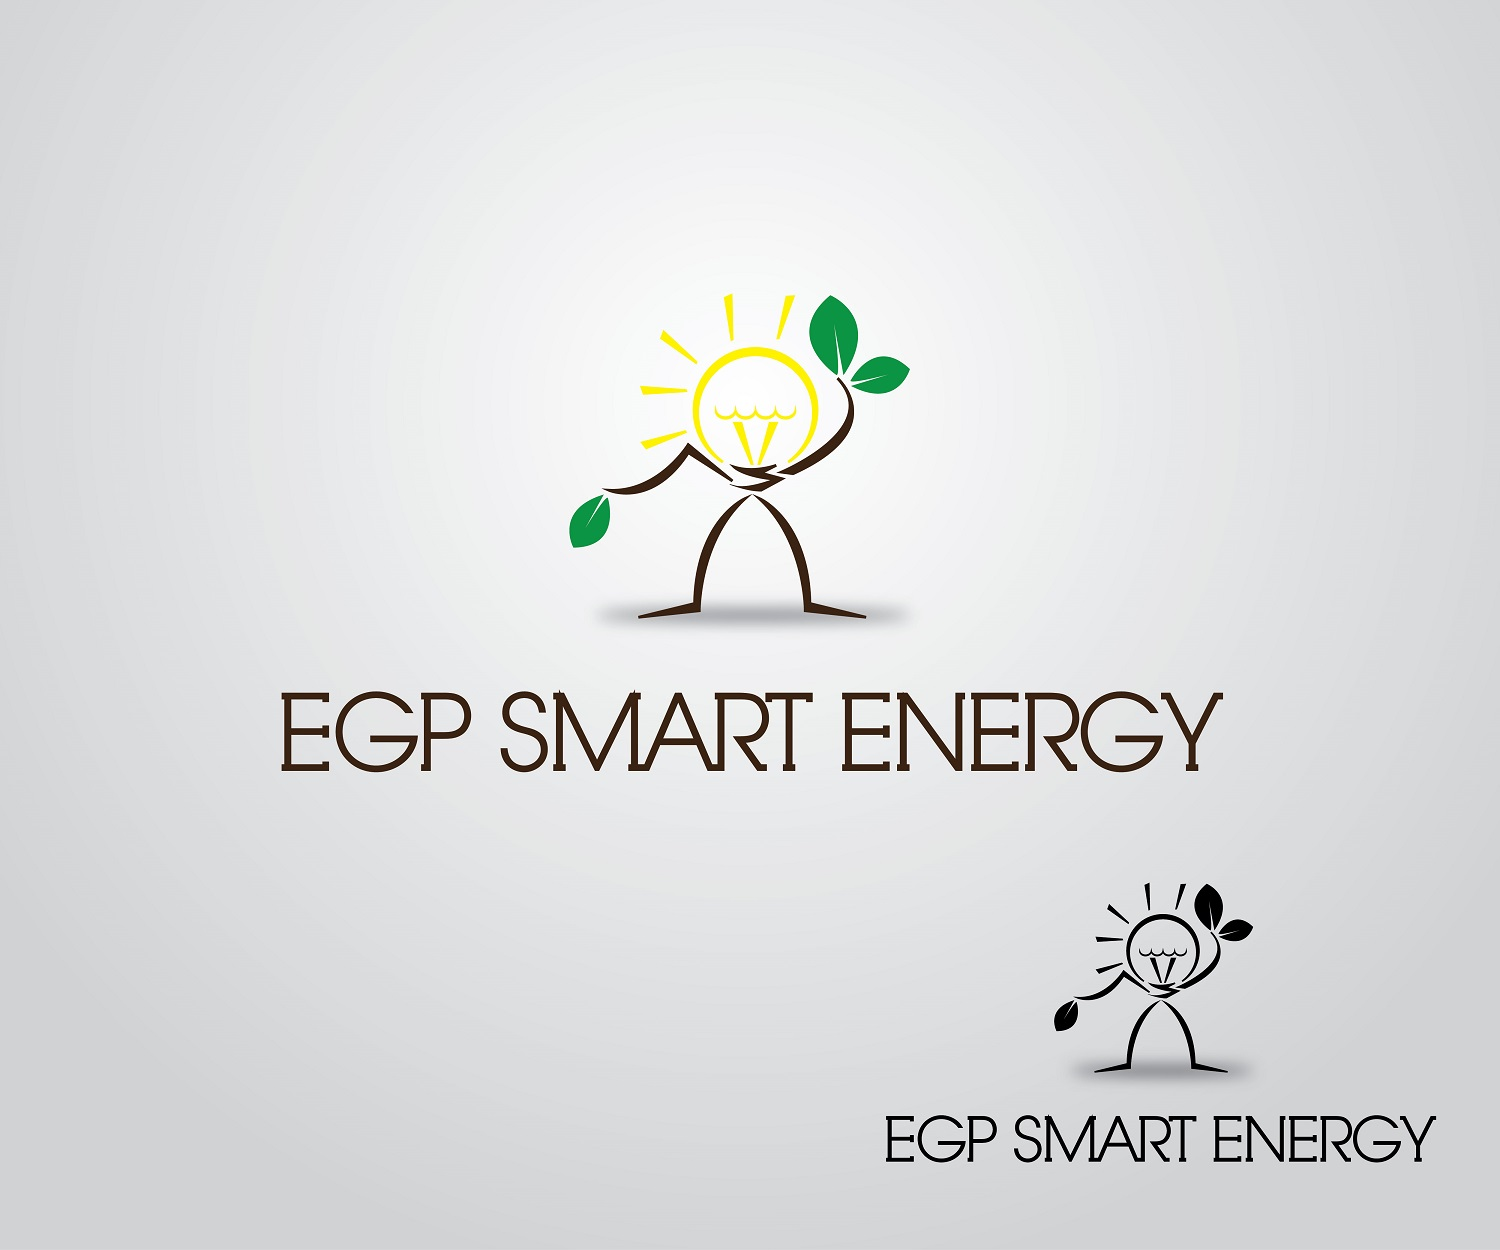 Logo Design by jhunzkie24 - Entry No. 51 in the Logo Design Contest Captivating Logo Design for EGP Smart Energy.